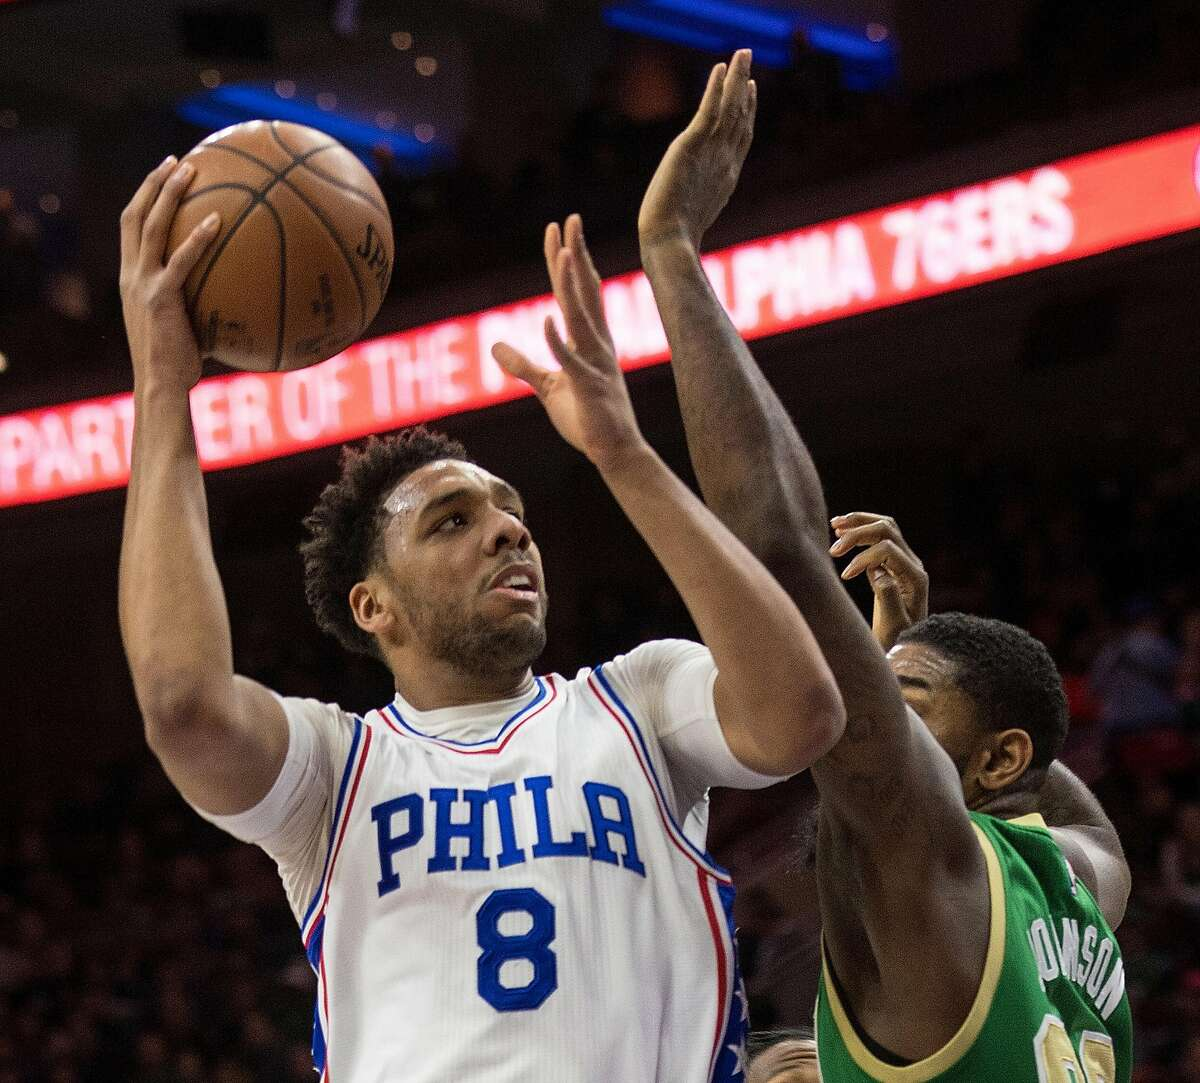 Philadelphia 76ers center Jahlil Okafor shoots against the Boston Celtics during first half action on Sunday, March 19, 2017 in Philadelphia, Pa. Okafor did not play in the second half as the Sixers defeated the Celtics 105-99. (Clem Murray/Philadelphia Inquirer/TNS)